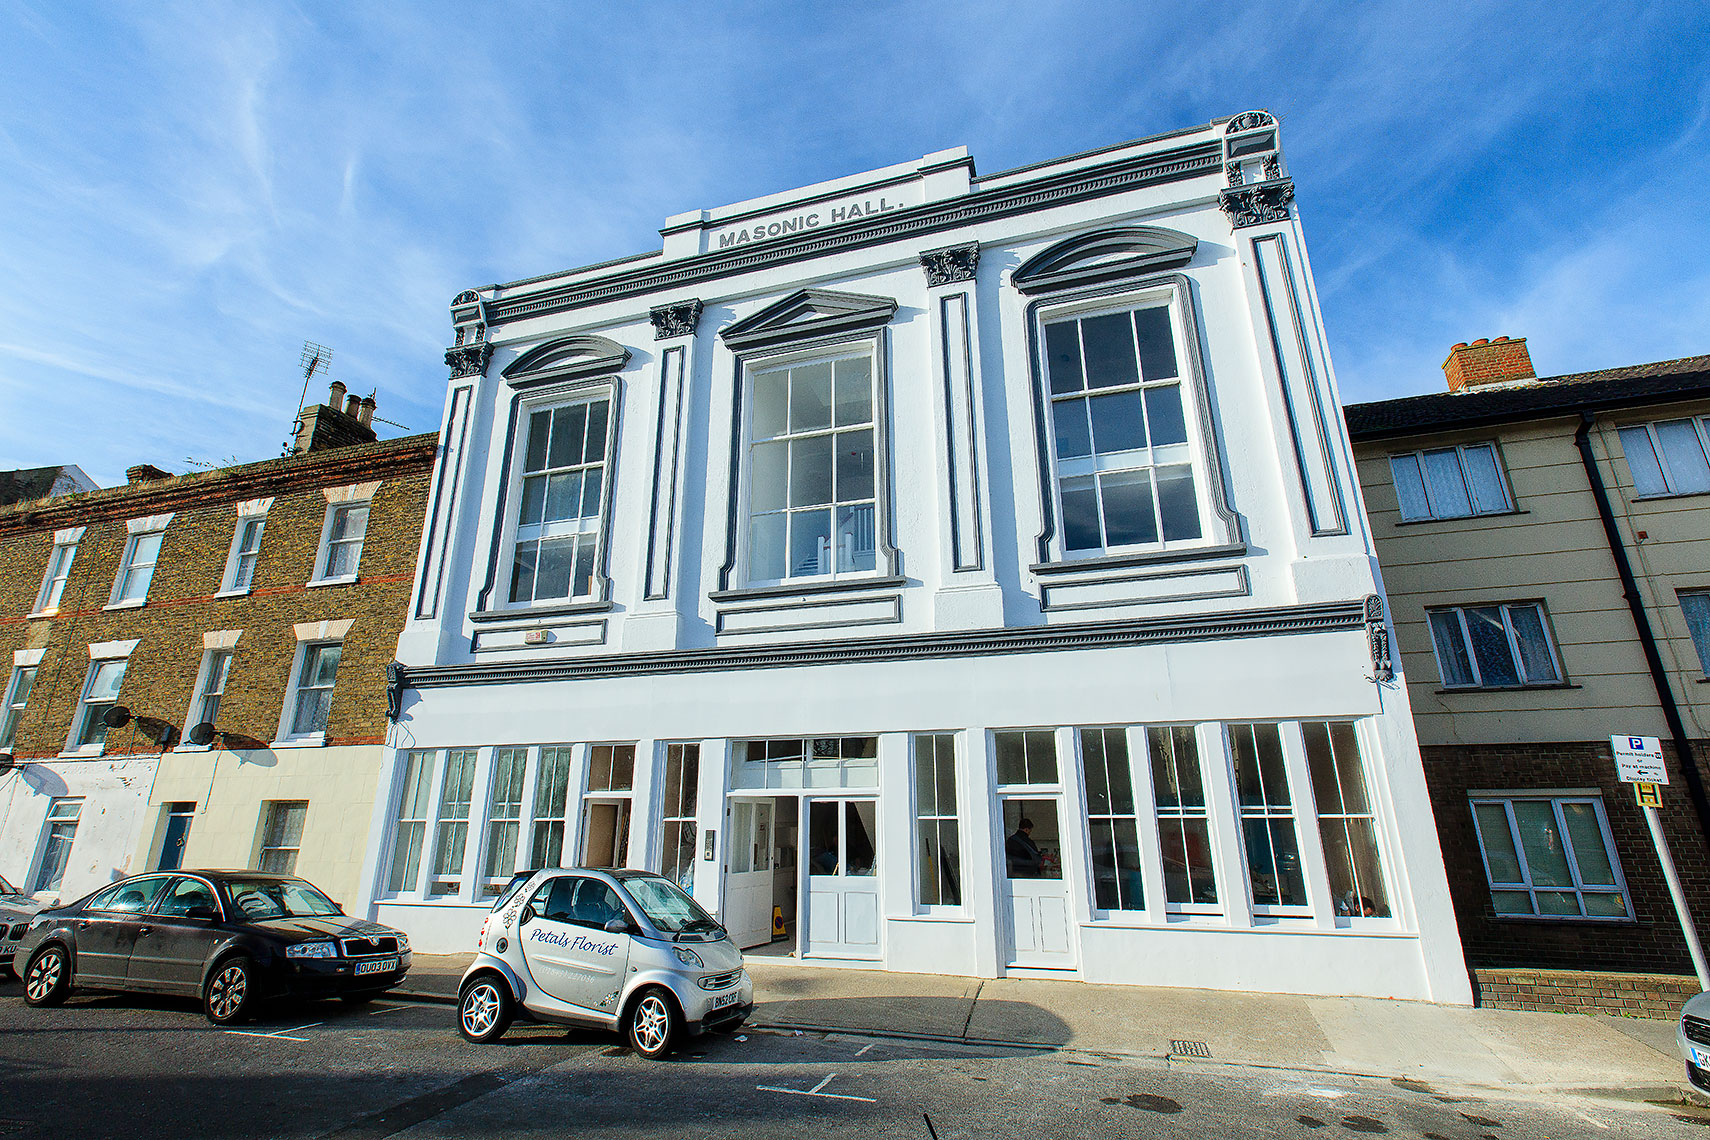 Exterior architecture of white listed building with white pillars in Margate, Kent